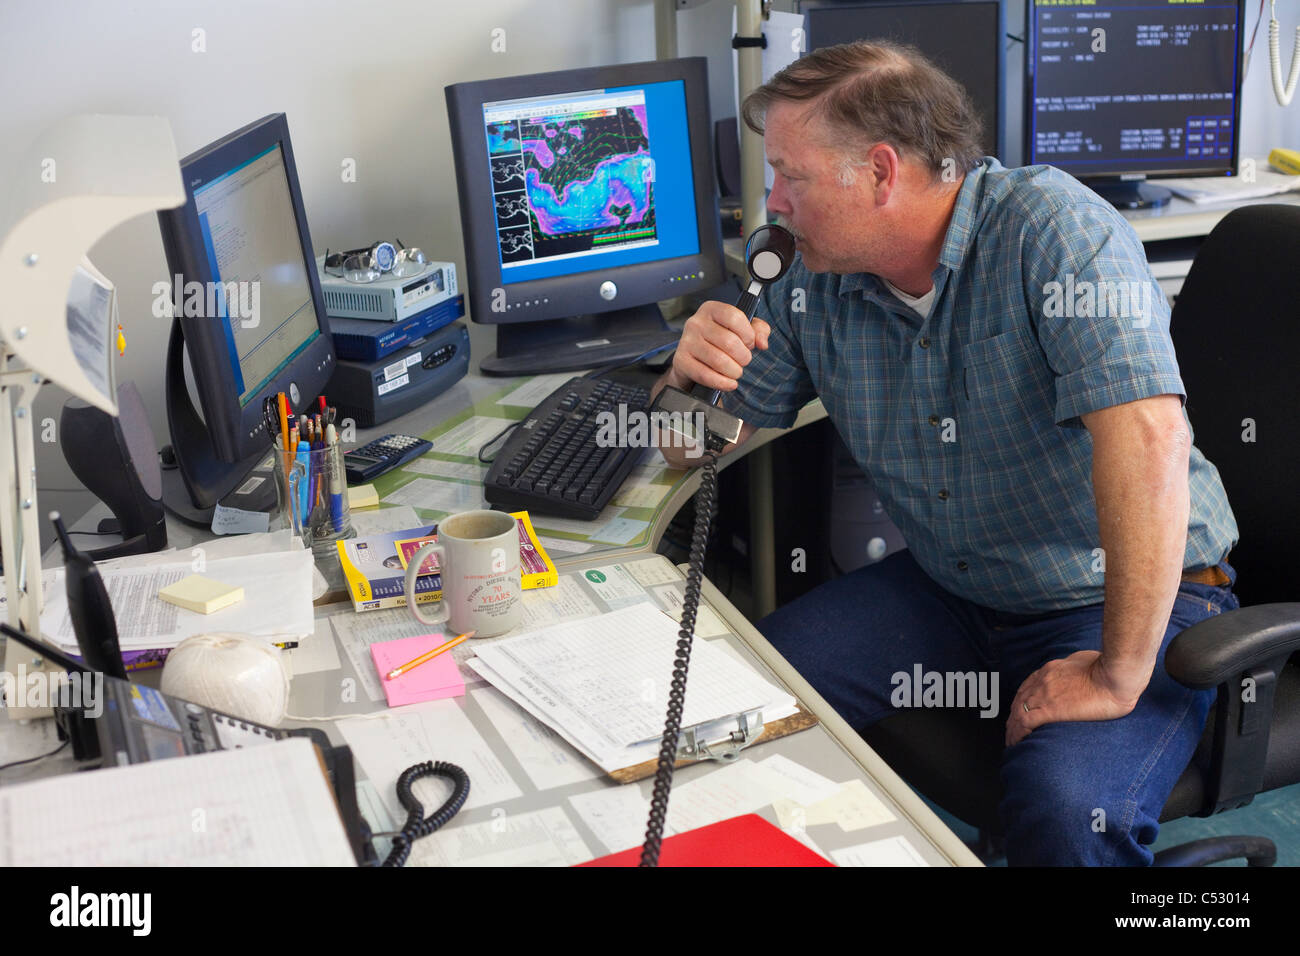 Port Meteorological Technician High Resolution Stock Photography and Images  - Alamy